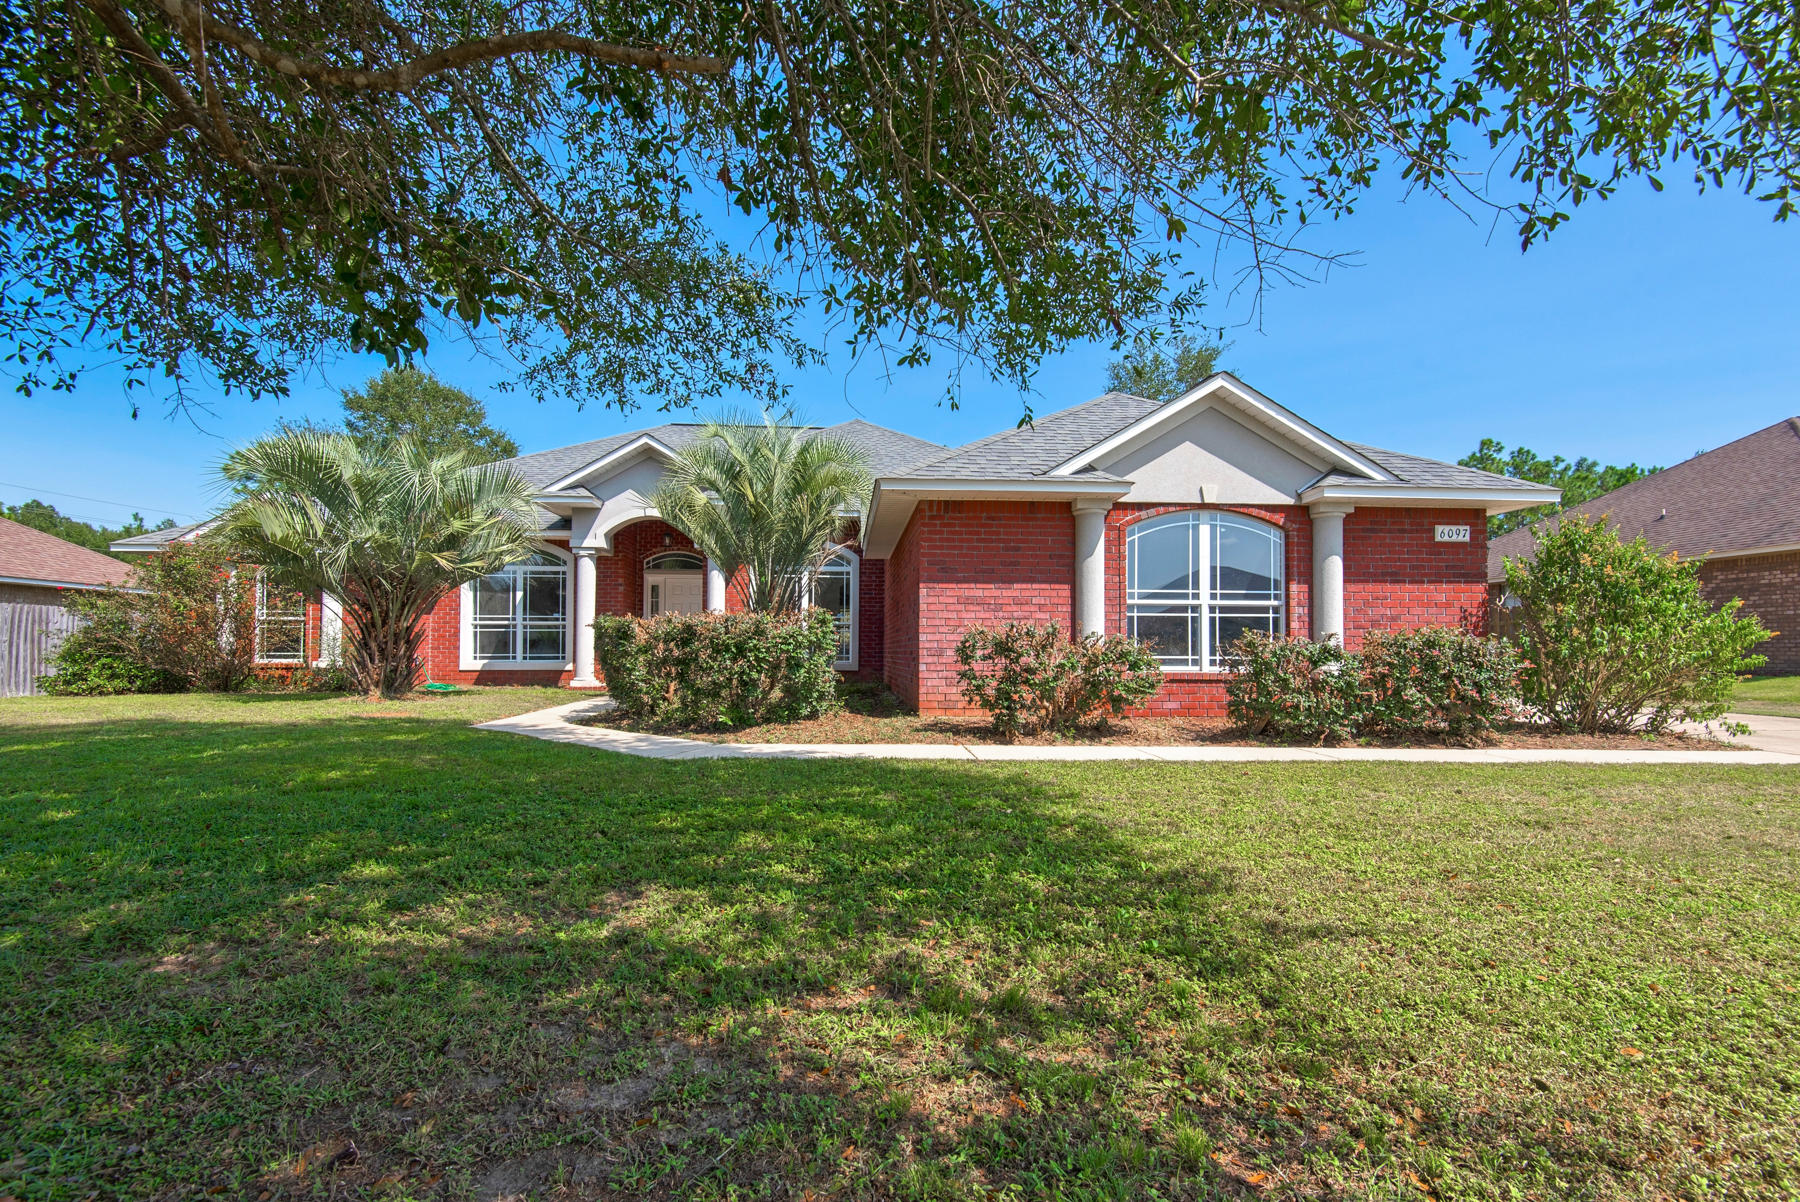 Photo of home for sale at 6097 Dragonfly, Crestview FL